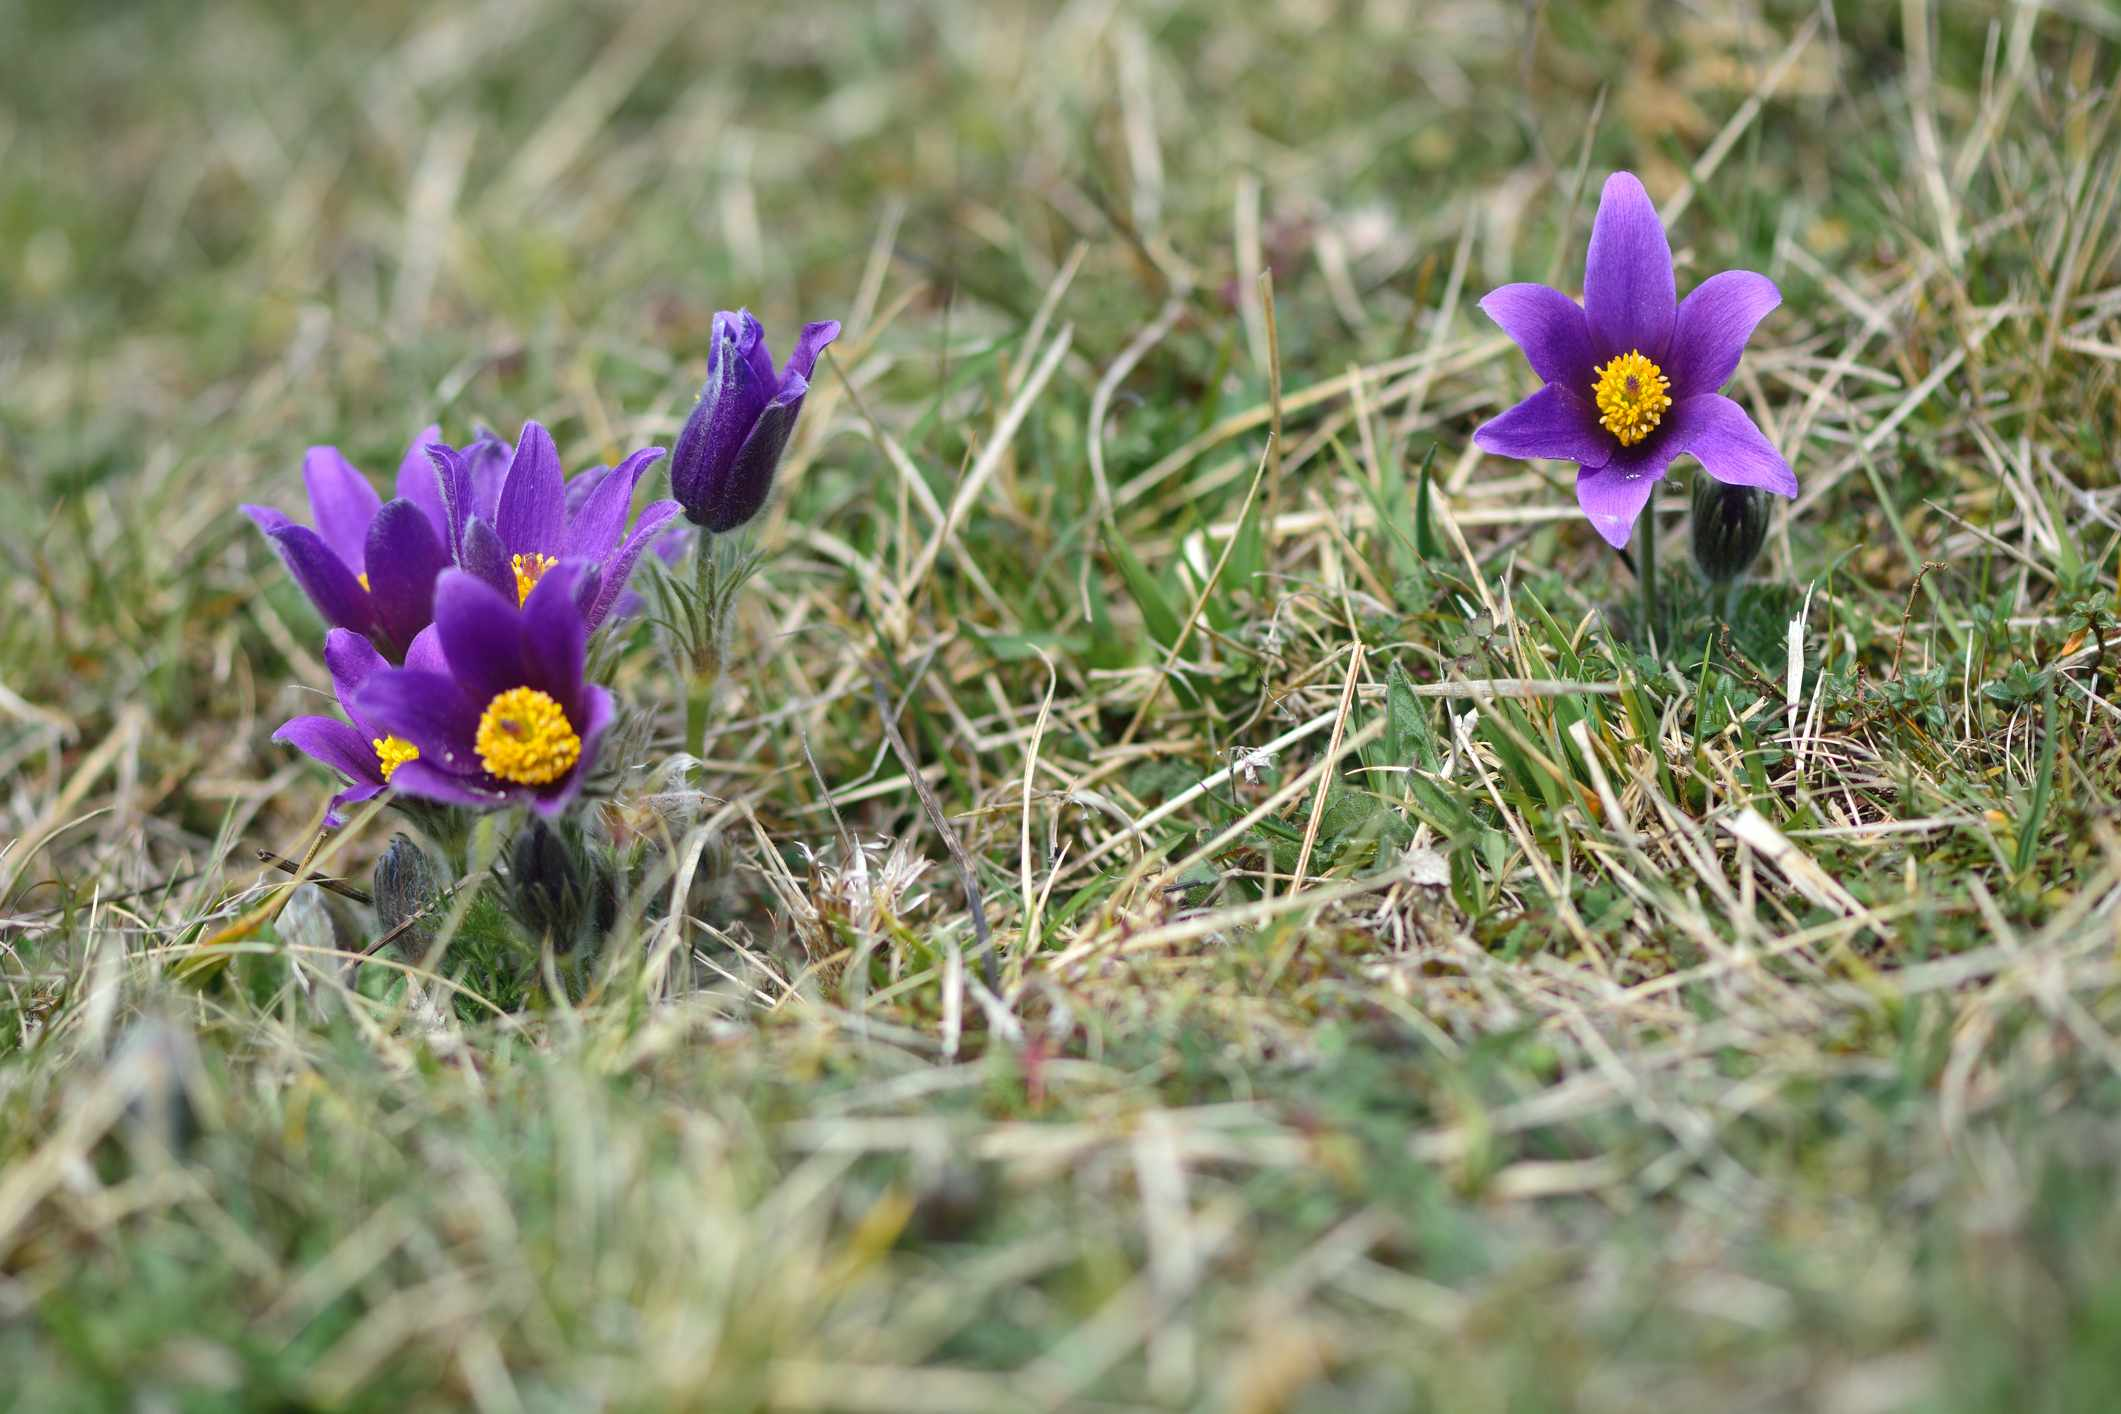 Pasqueflowers. © Ian Redding/Getty